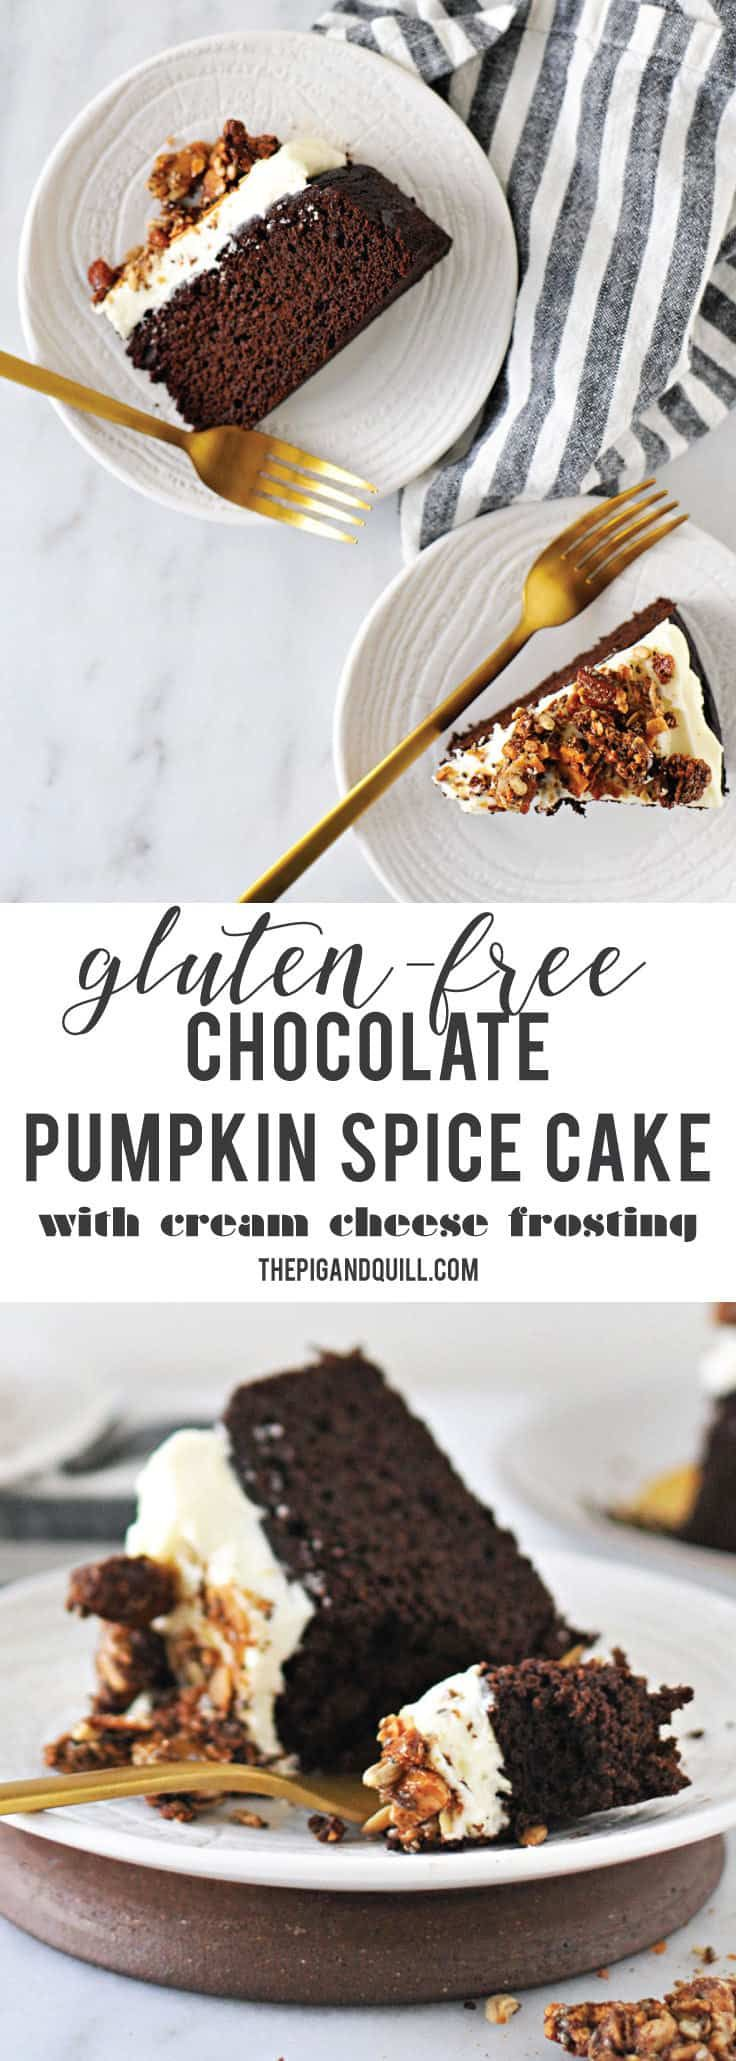 Chocolate pumpkin spice cake with cream cheese frosting